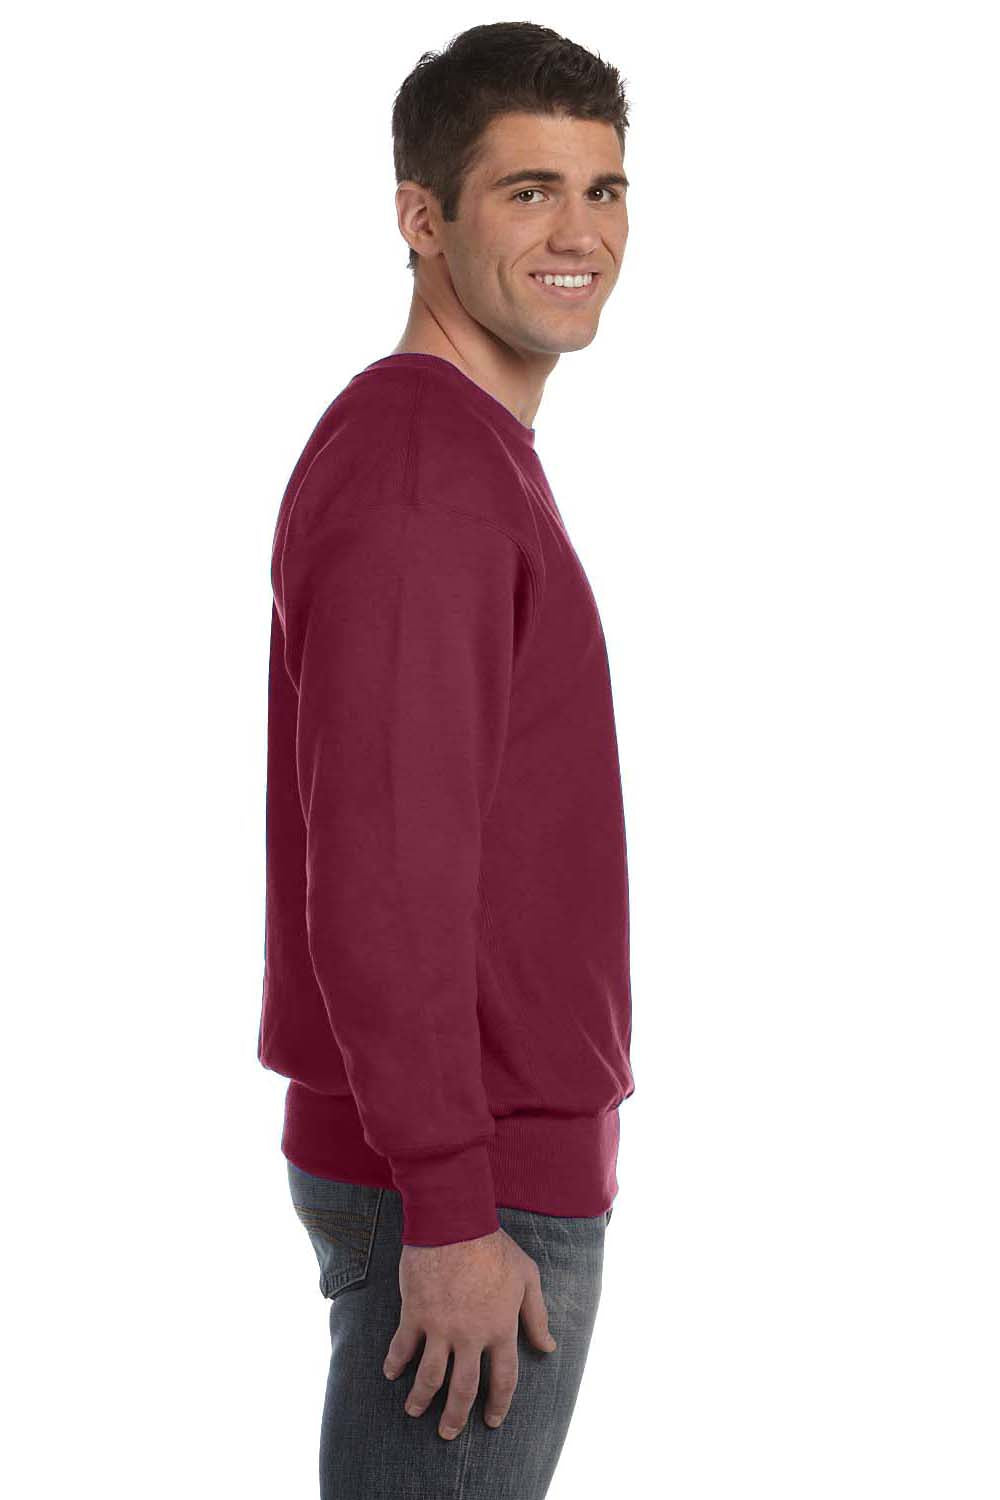 Champion S1049 Mens Crewneck Sweatshirt Maroon Side